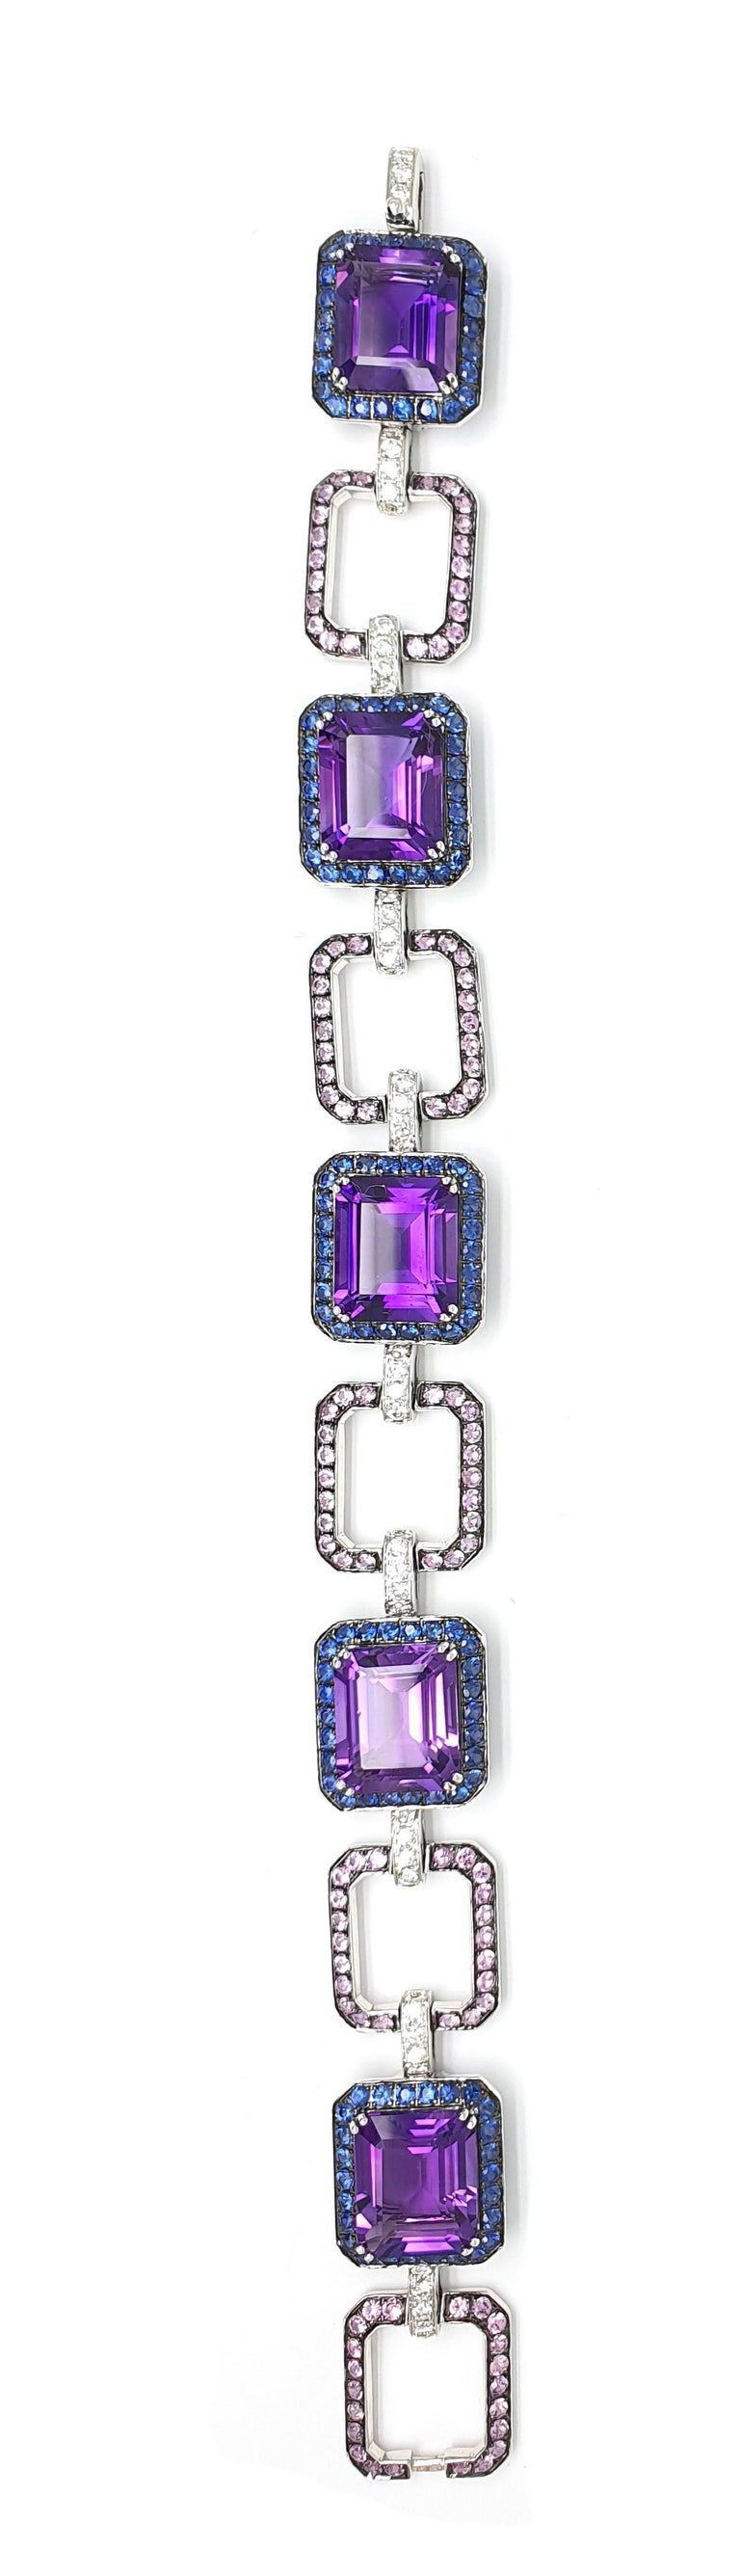 An 18Krt White gold bracelet with 25.69ct 8-angular sharpened Amethyst, 3.25ct blue-lilac Corunds, 2.64ct pink Corunds, 0.98ct brilliantly sharpened diamonds. 18 K White Gold 26.85 grams. This piece matches the ring and necklace in the same design